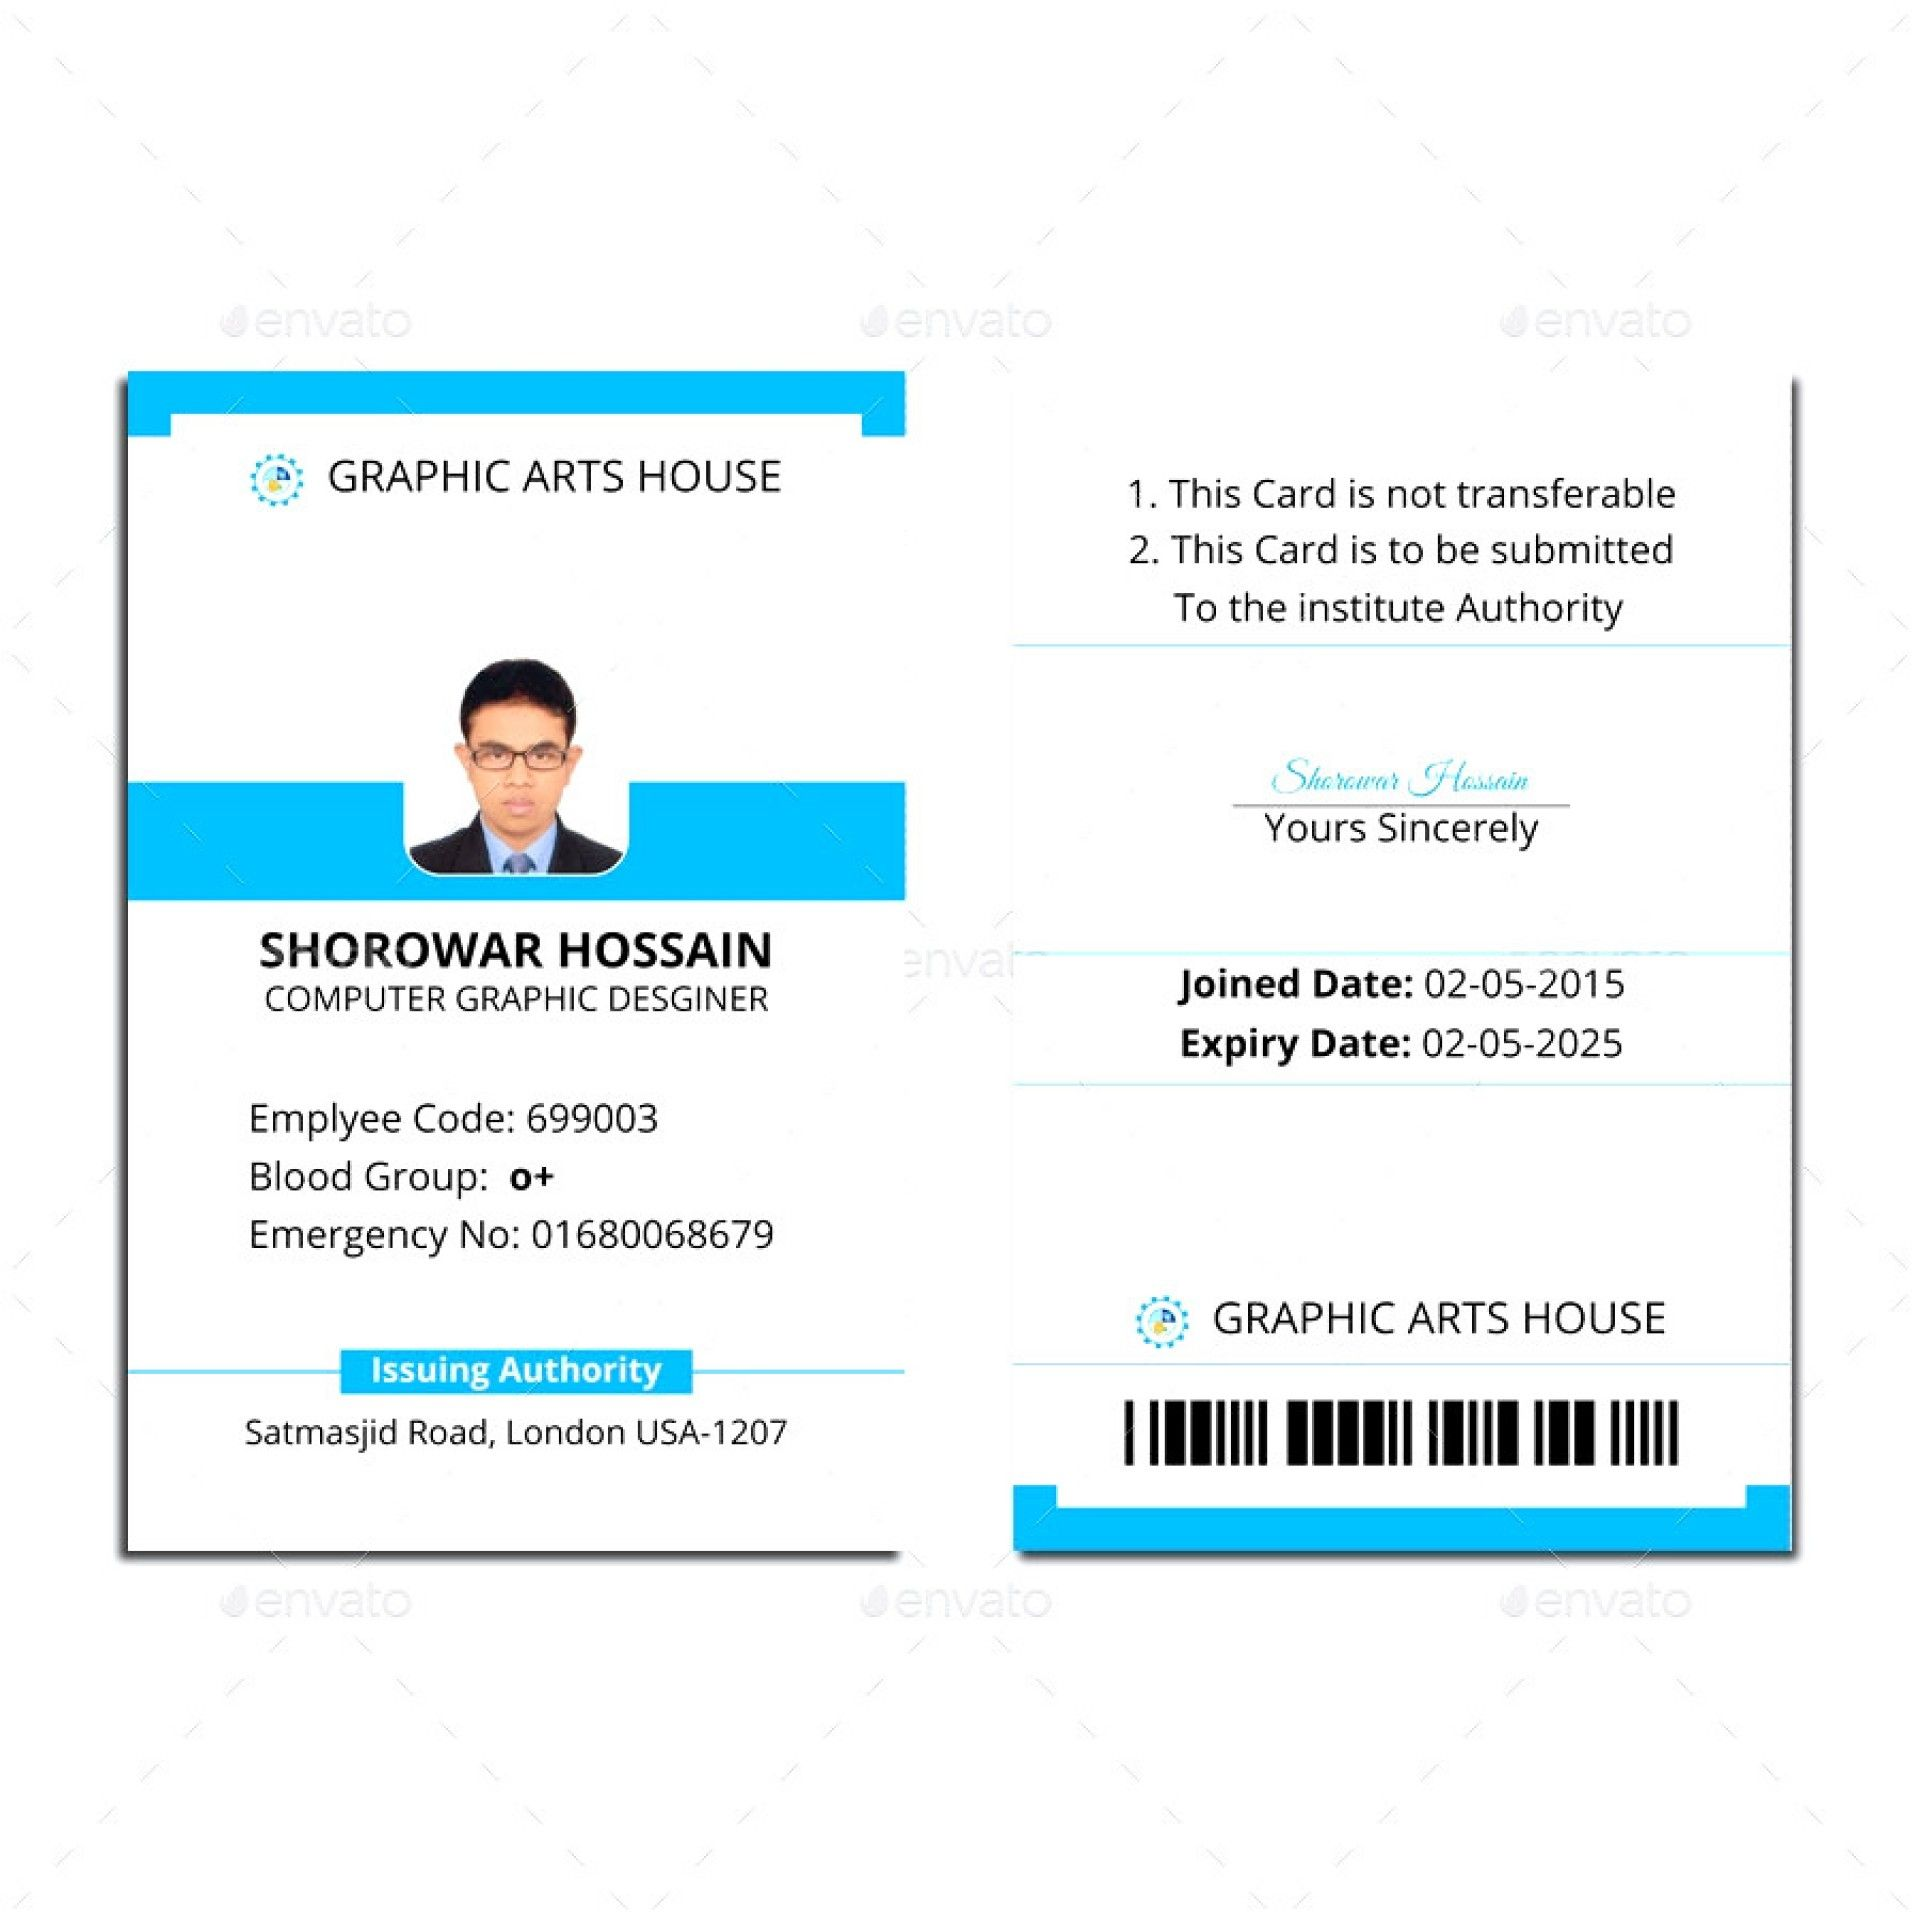 017 Mobile Free Id Badge Template Rare Ideas Vertical Card For Free Id Card Template Word Cumed Org Employees Card Id Card Template Card Template